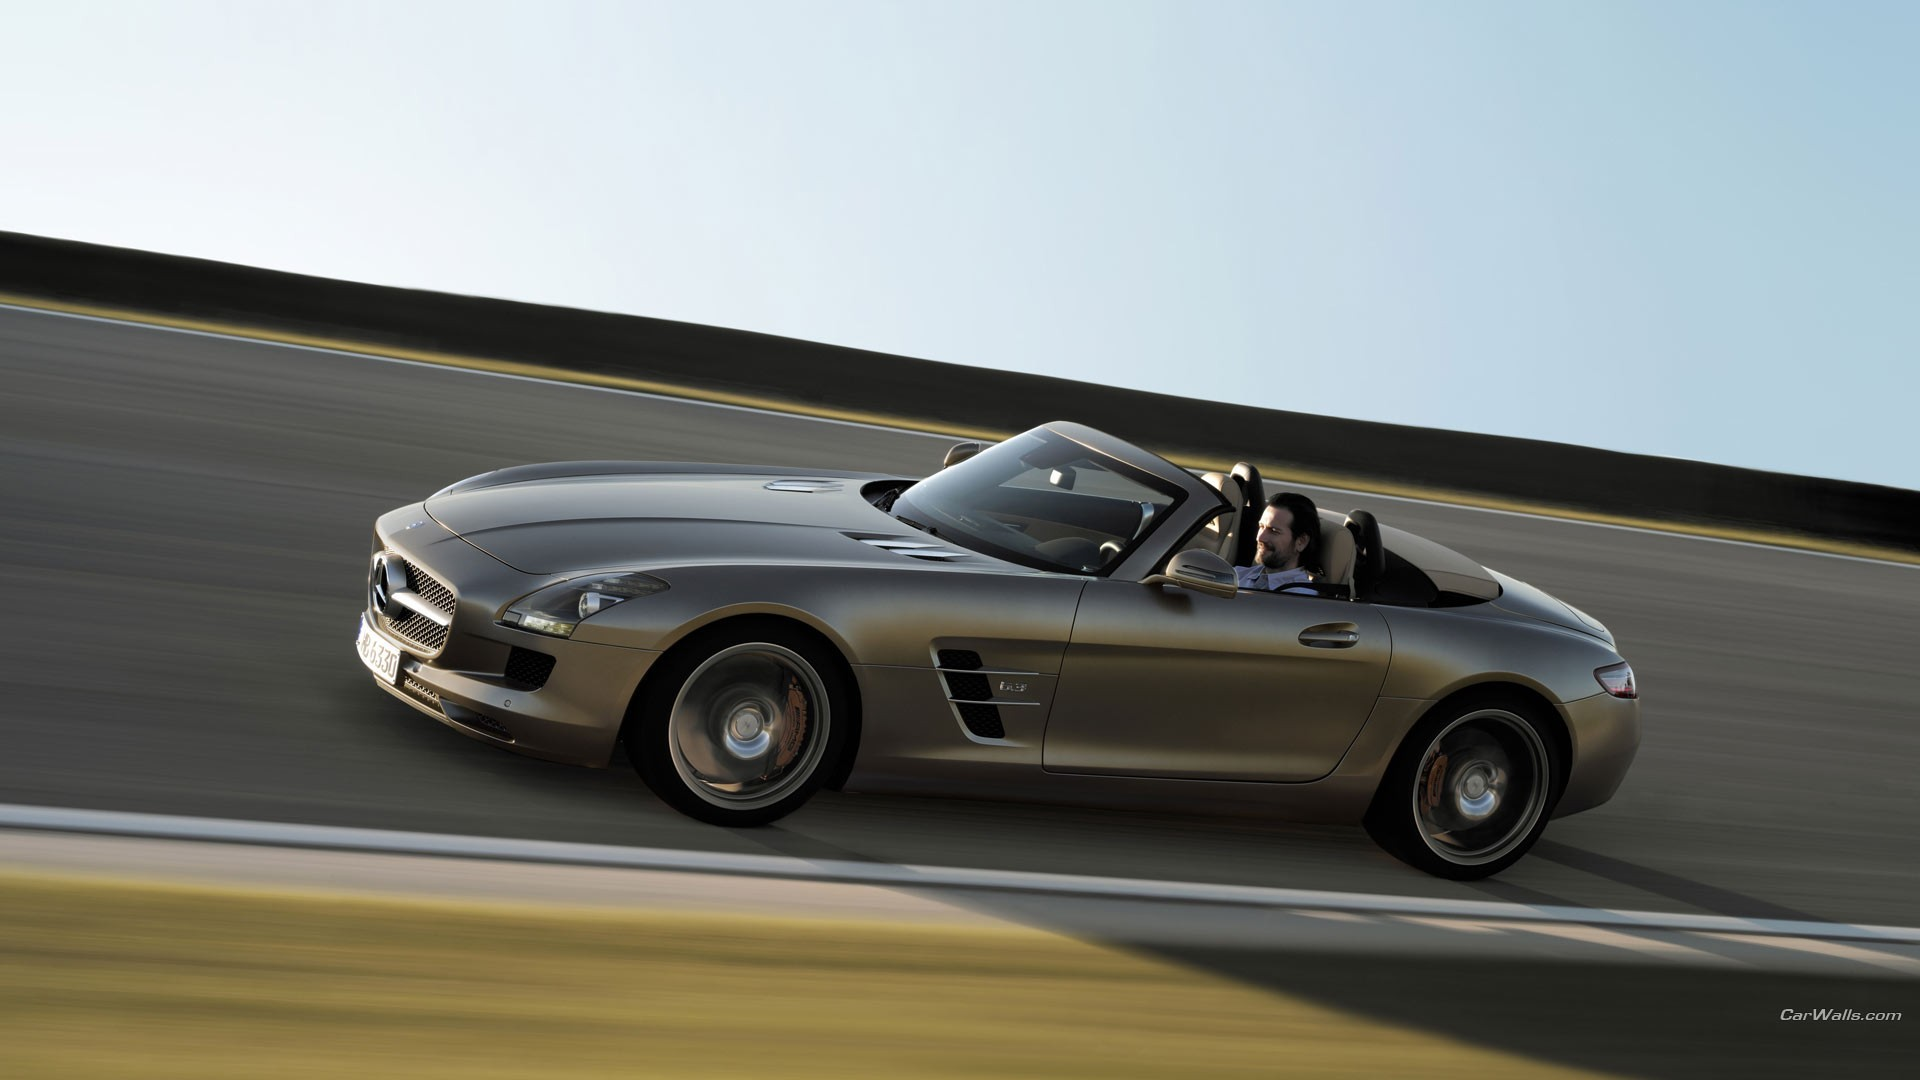 cars mercedes-benz sls amg HD Wallpaper